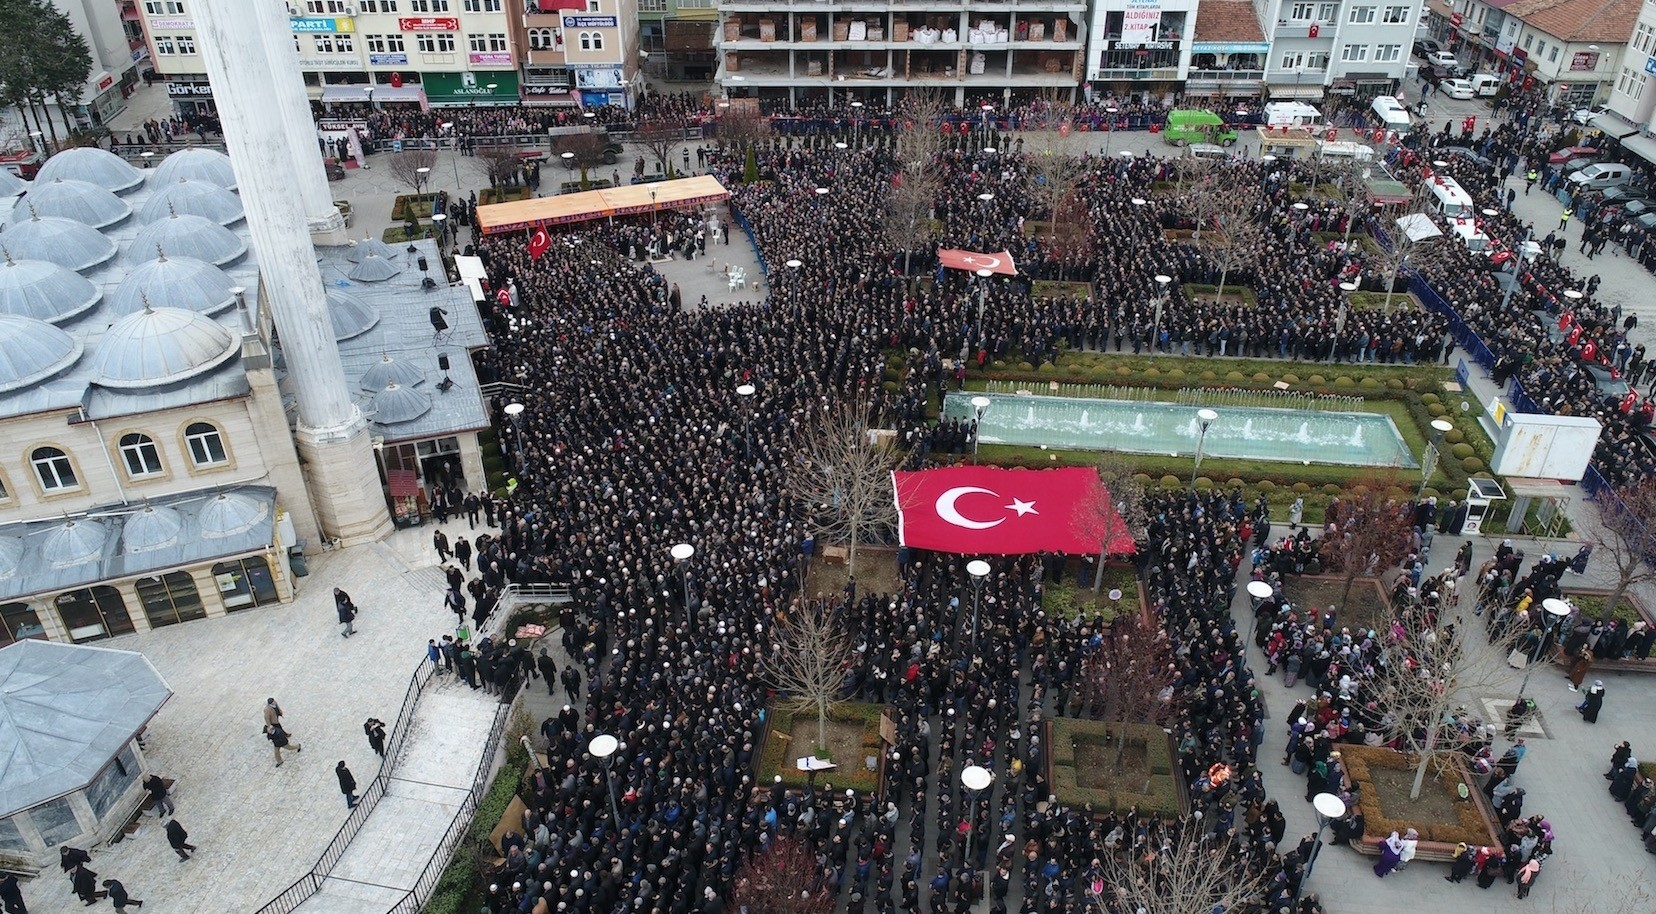 Funeral for Gu00f6ksu u015eafak u015eahin, the 32nd soldier to die in Operation Olive Branch, drew thousands of mourners.